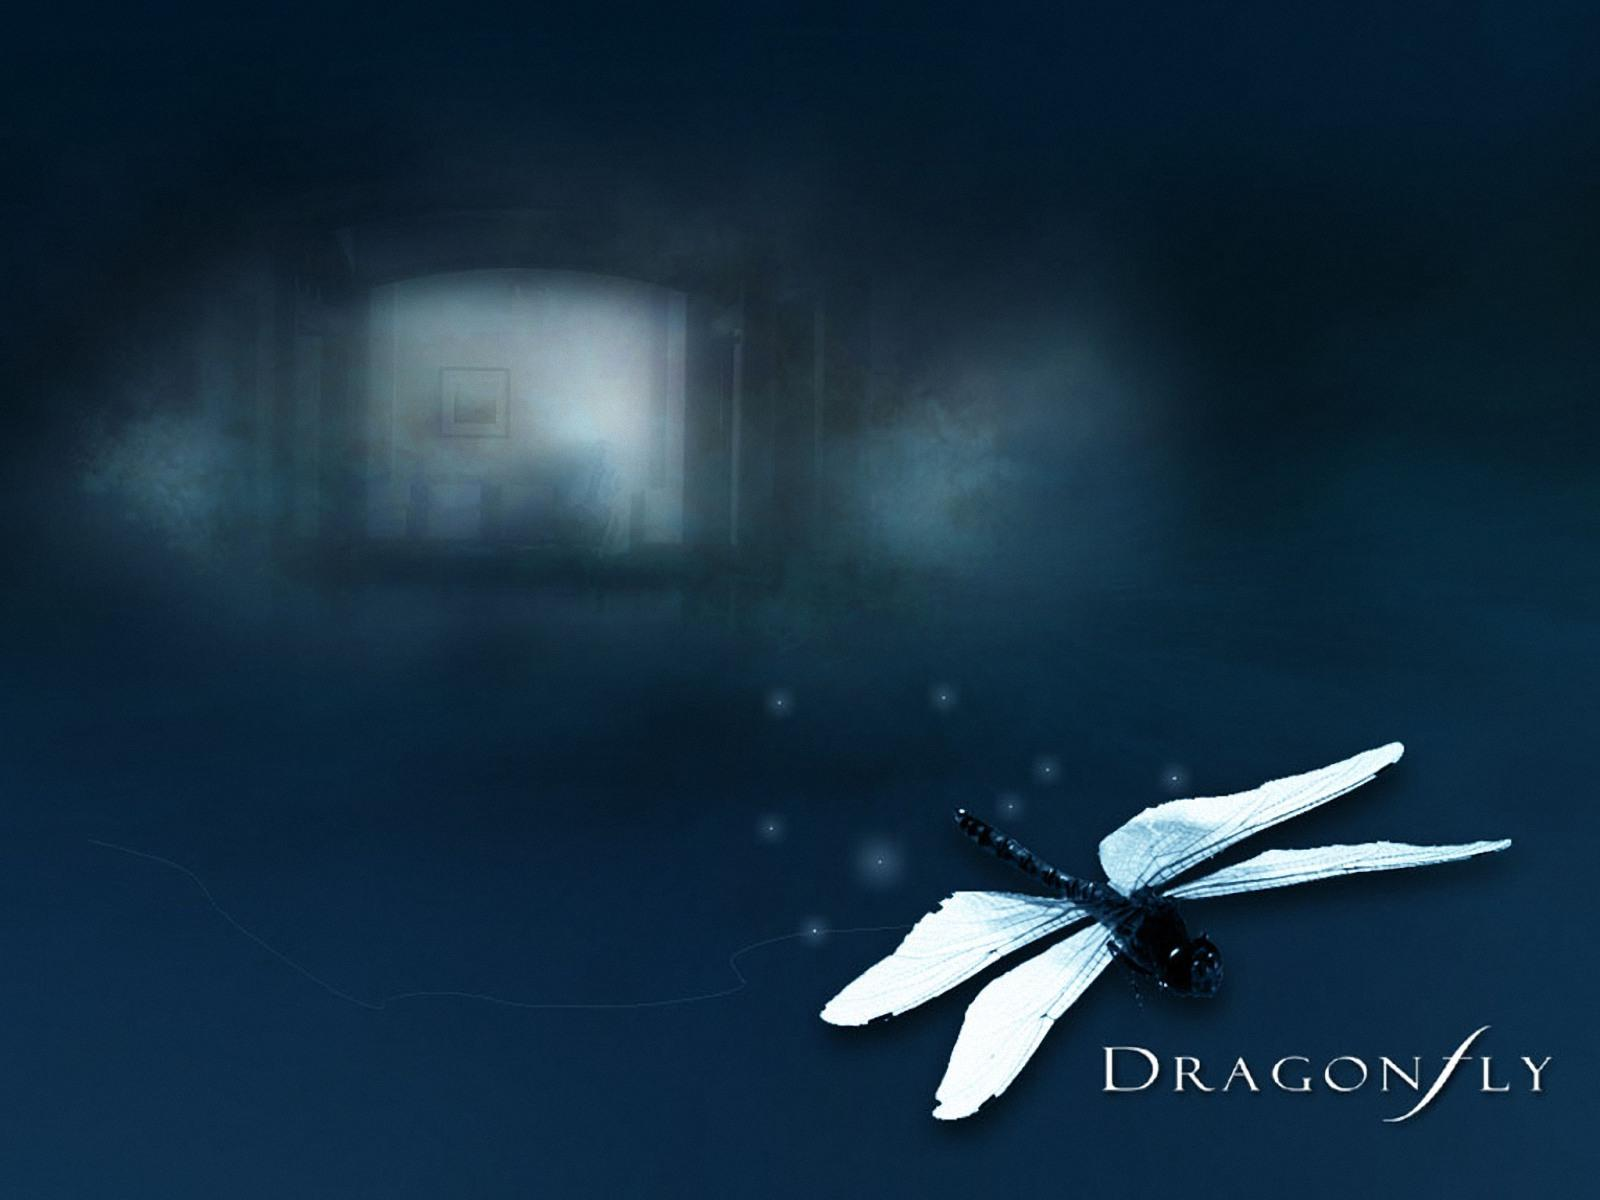 Dragonfly WallpapersDragonfly Wallpapers Pictures Download 1600x1200